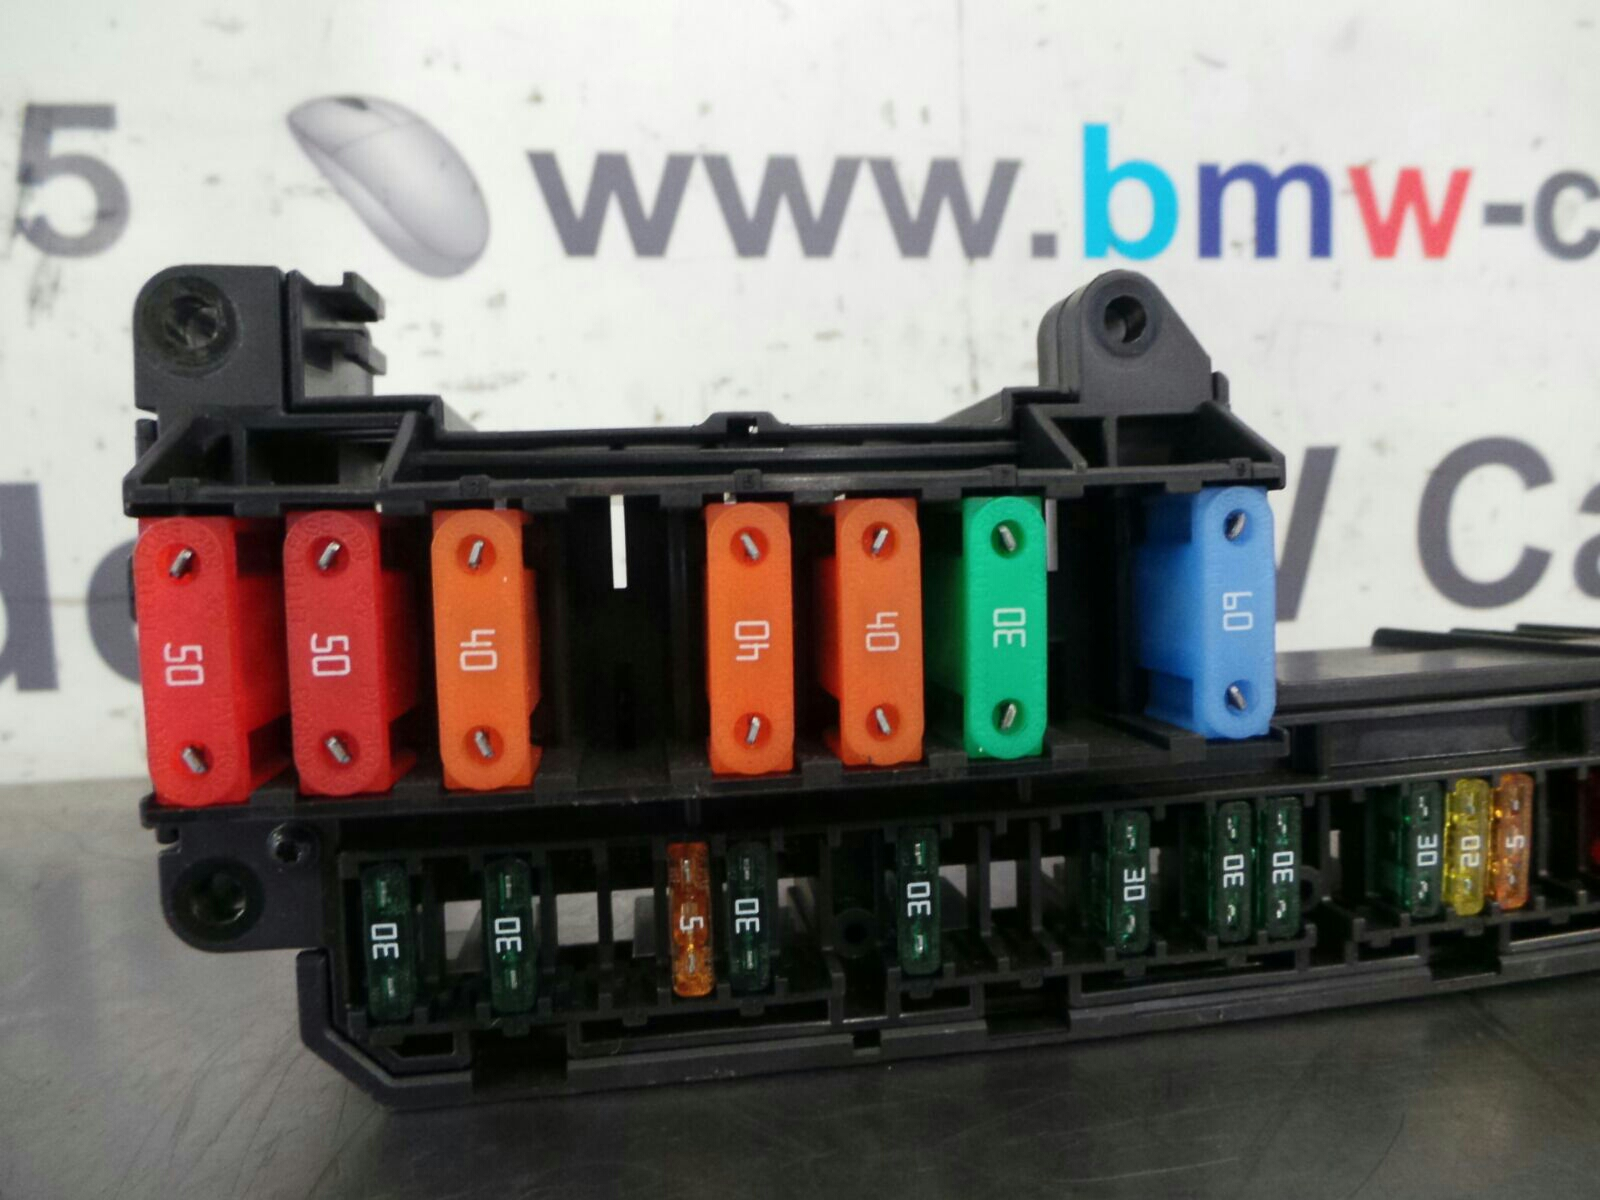 Bmw 5 Series E60 Lci Fuse Box 6932452 6957330 Breaking For Used And 550i